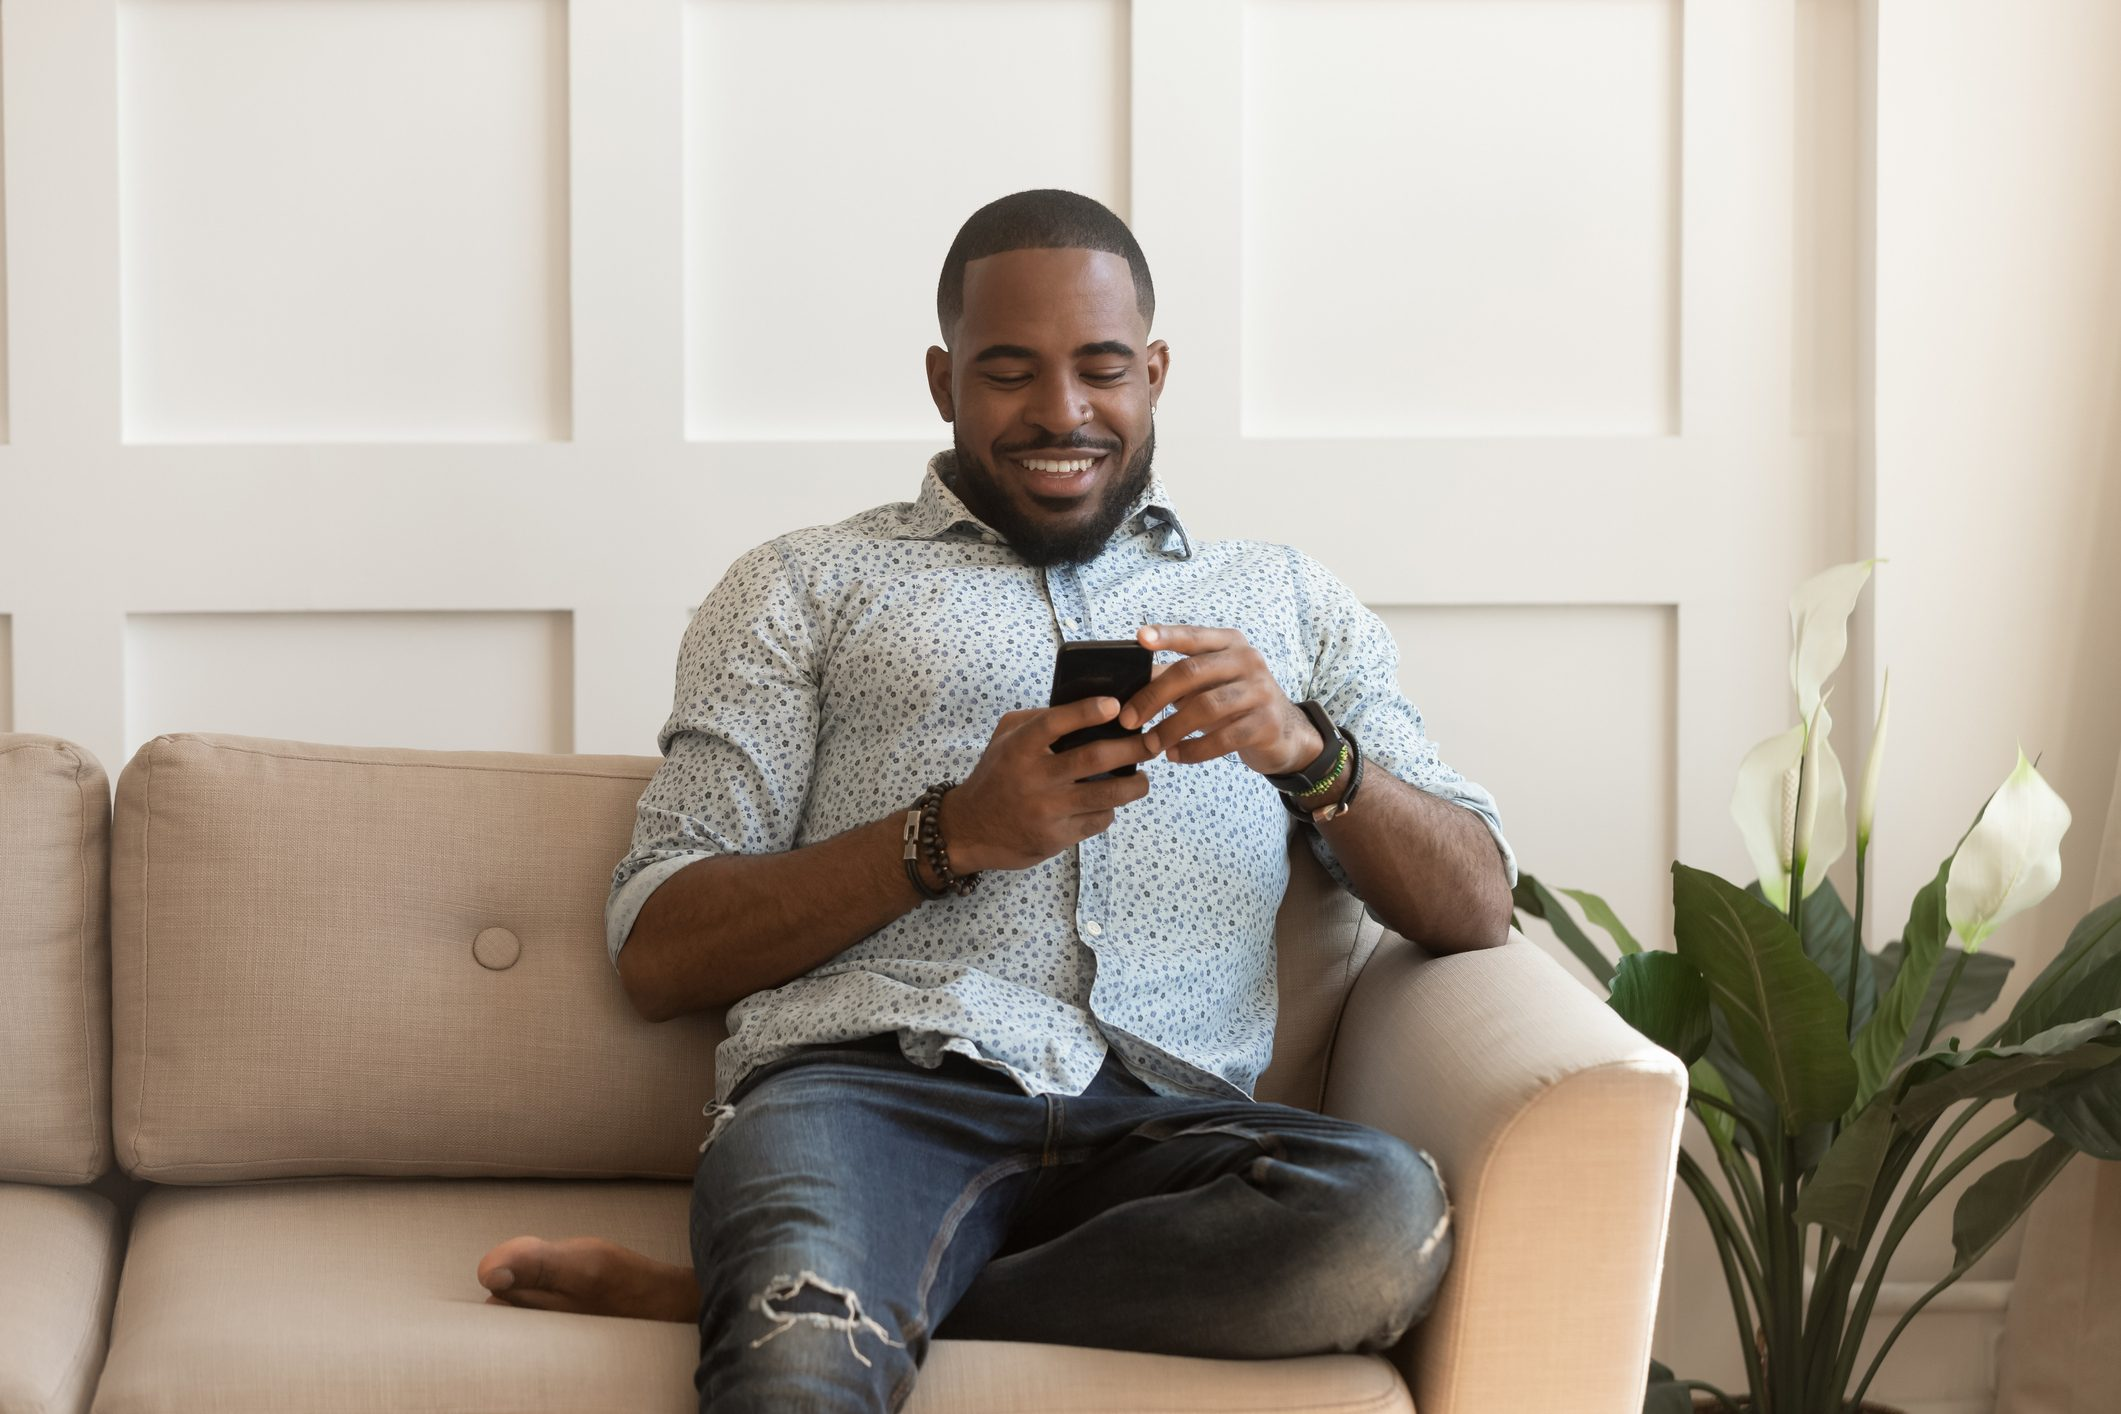 African guy sitting on couch chatting online using smartphone